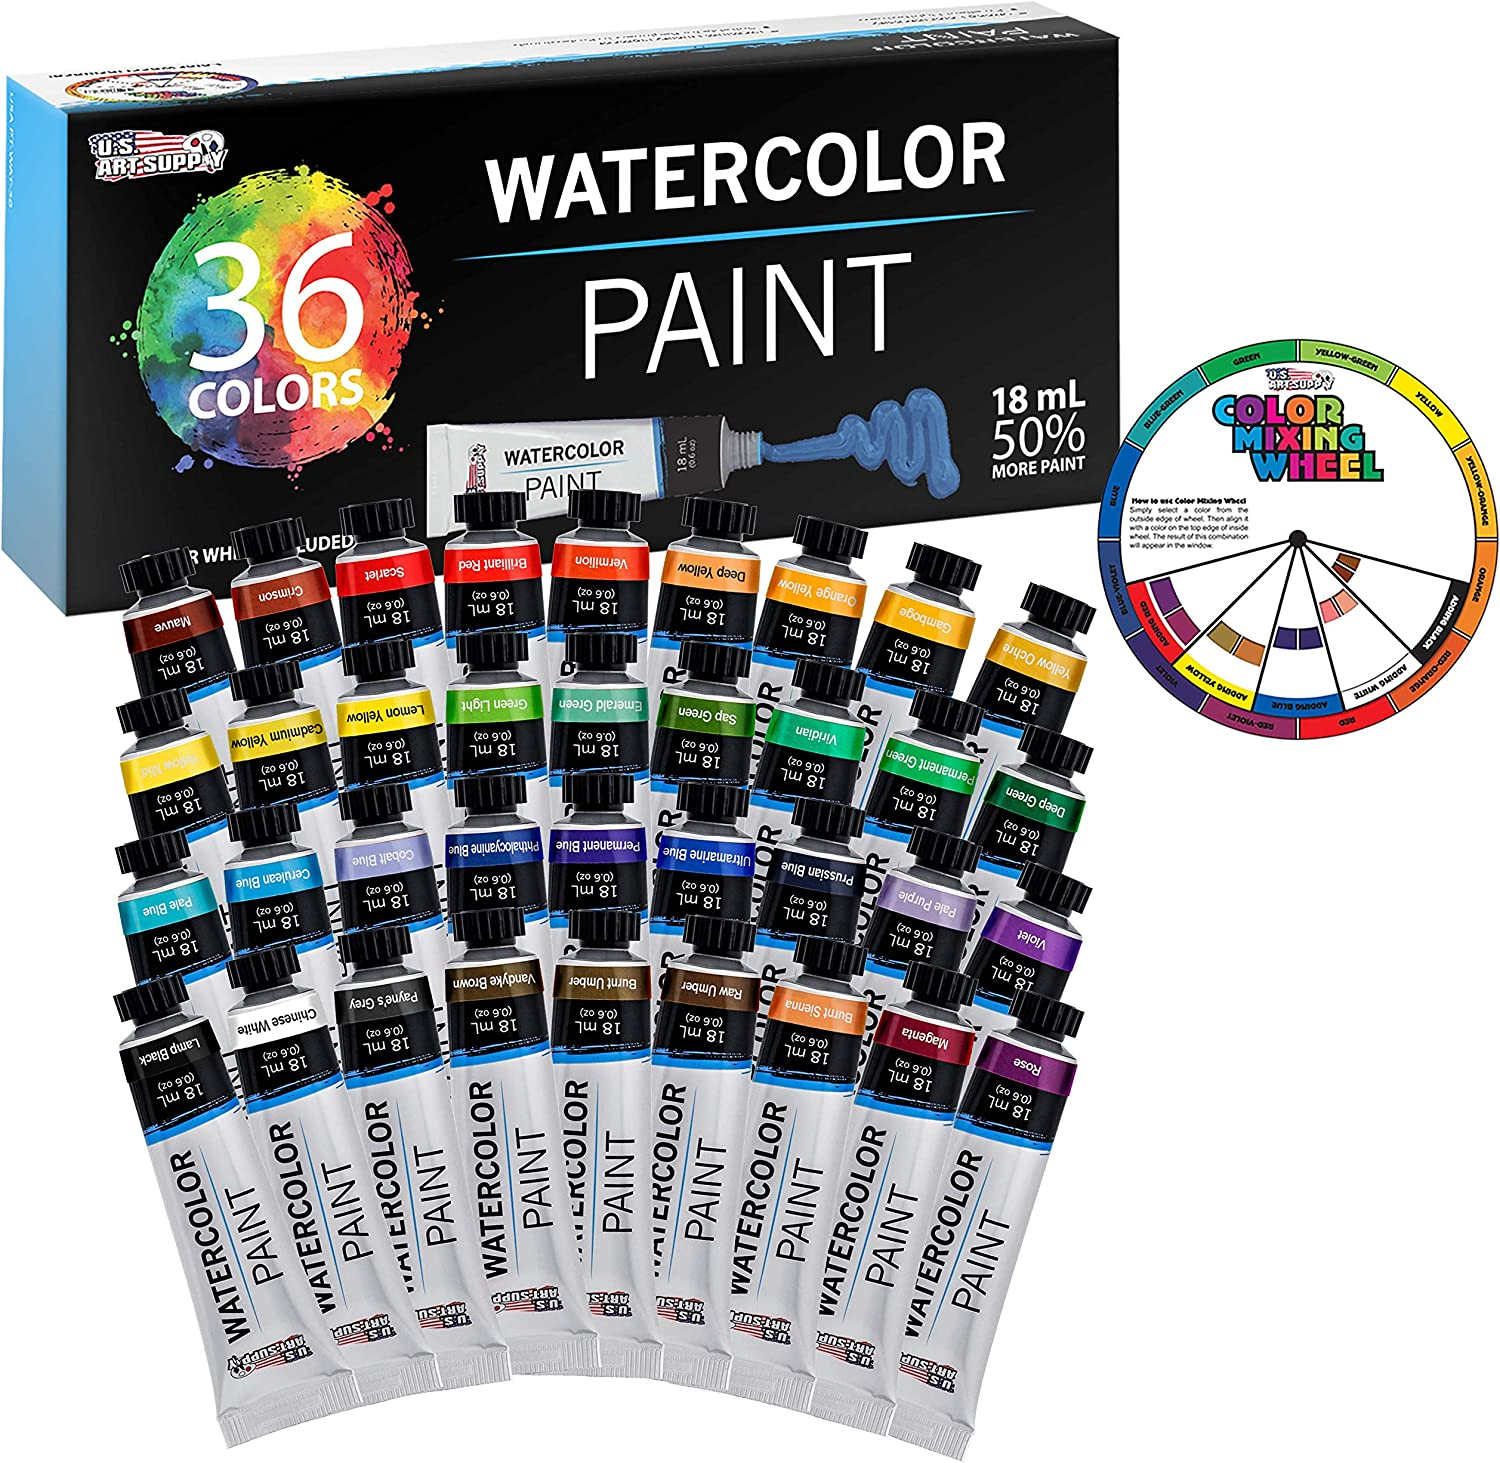 U.S. Art online shopping Supply Sale item Professional 36 Color in Set Paint Watercolor of